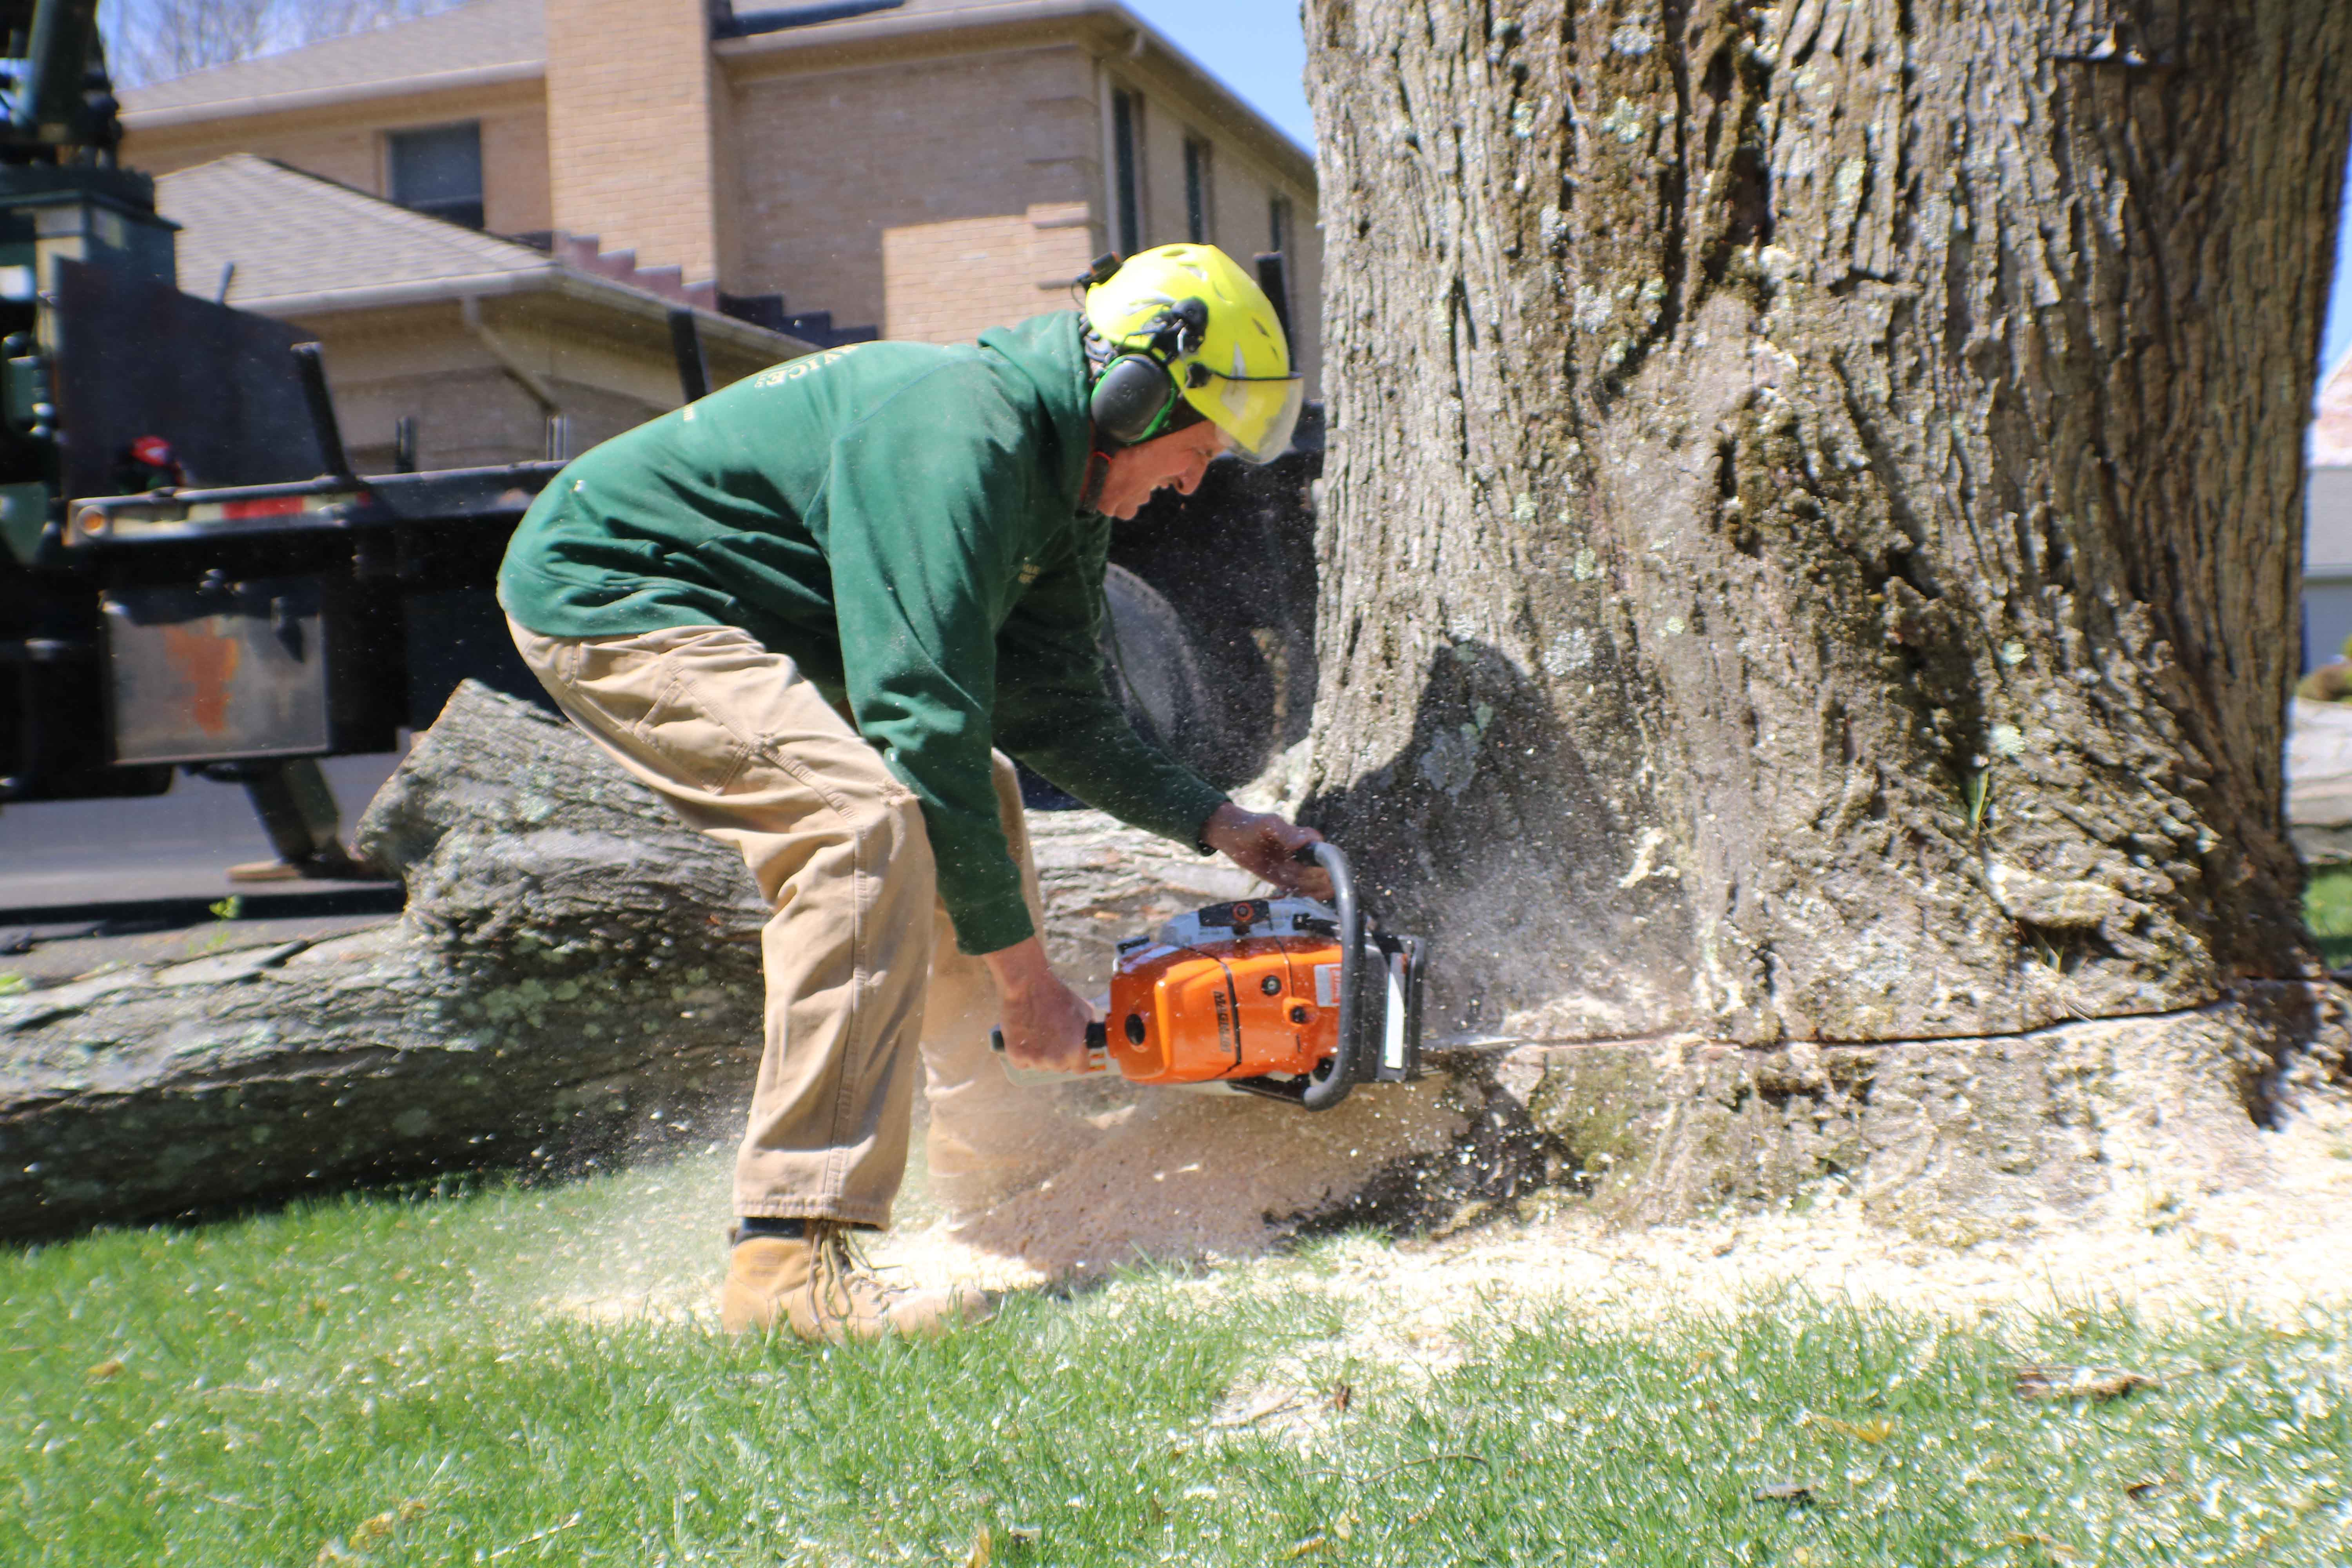 cutting down tree with chainsaw. tree removal. felling tree